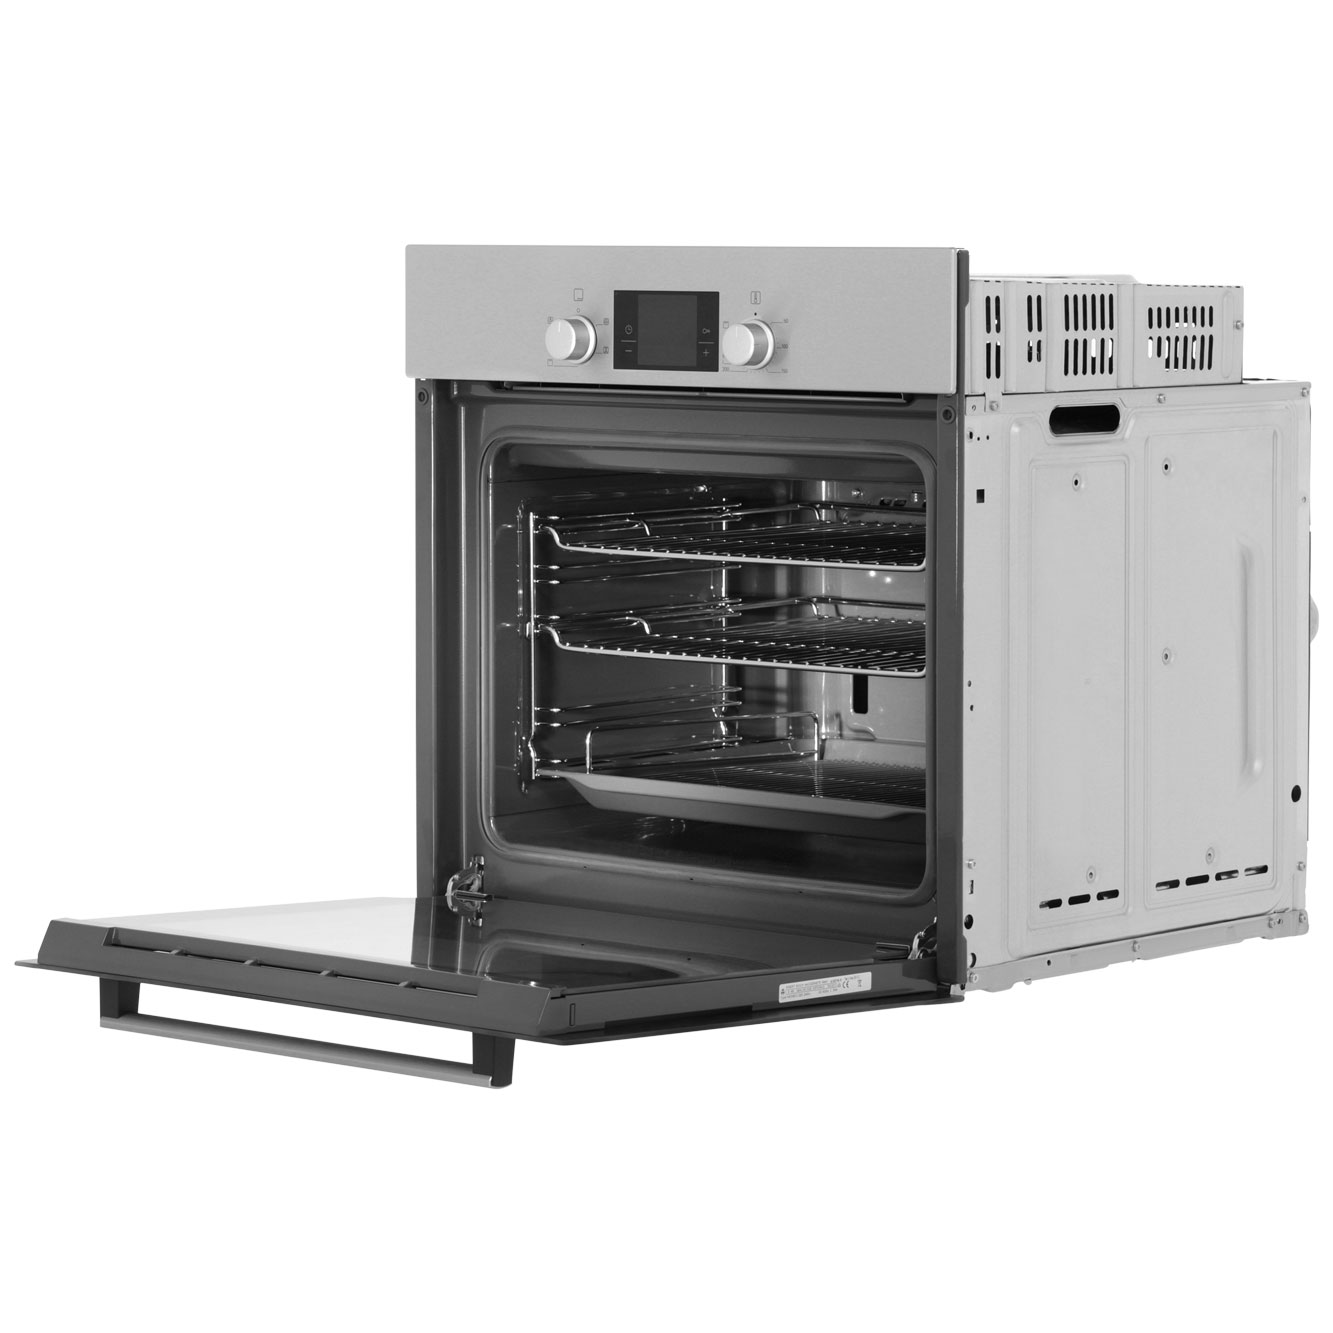 Bosch Built In Oven Manual